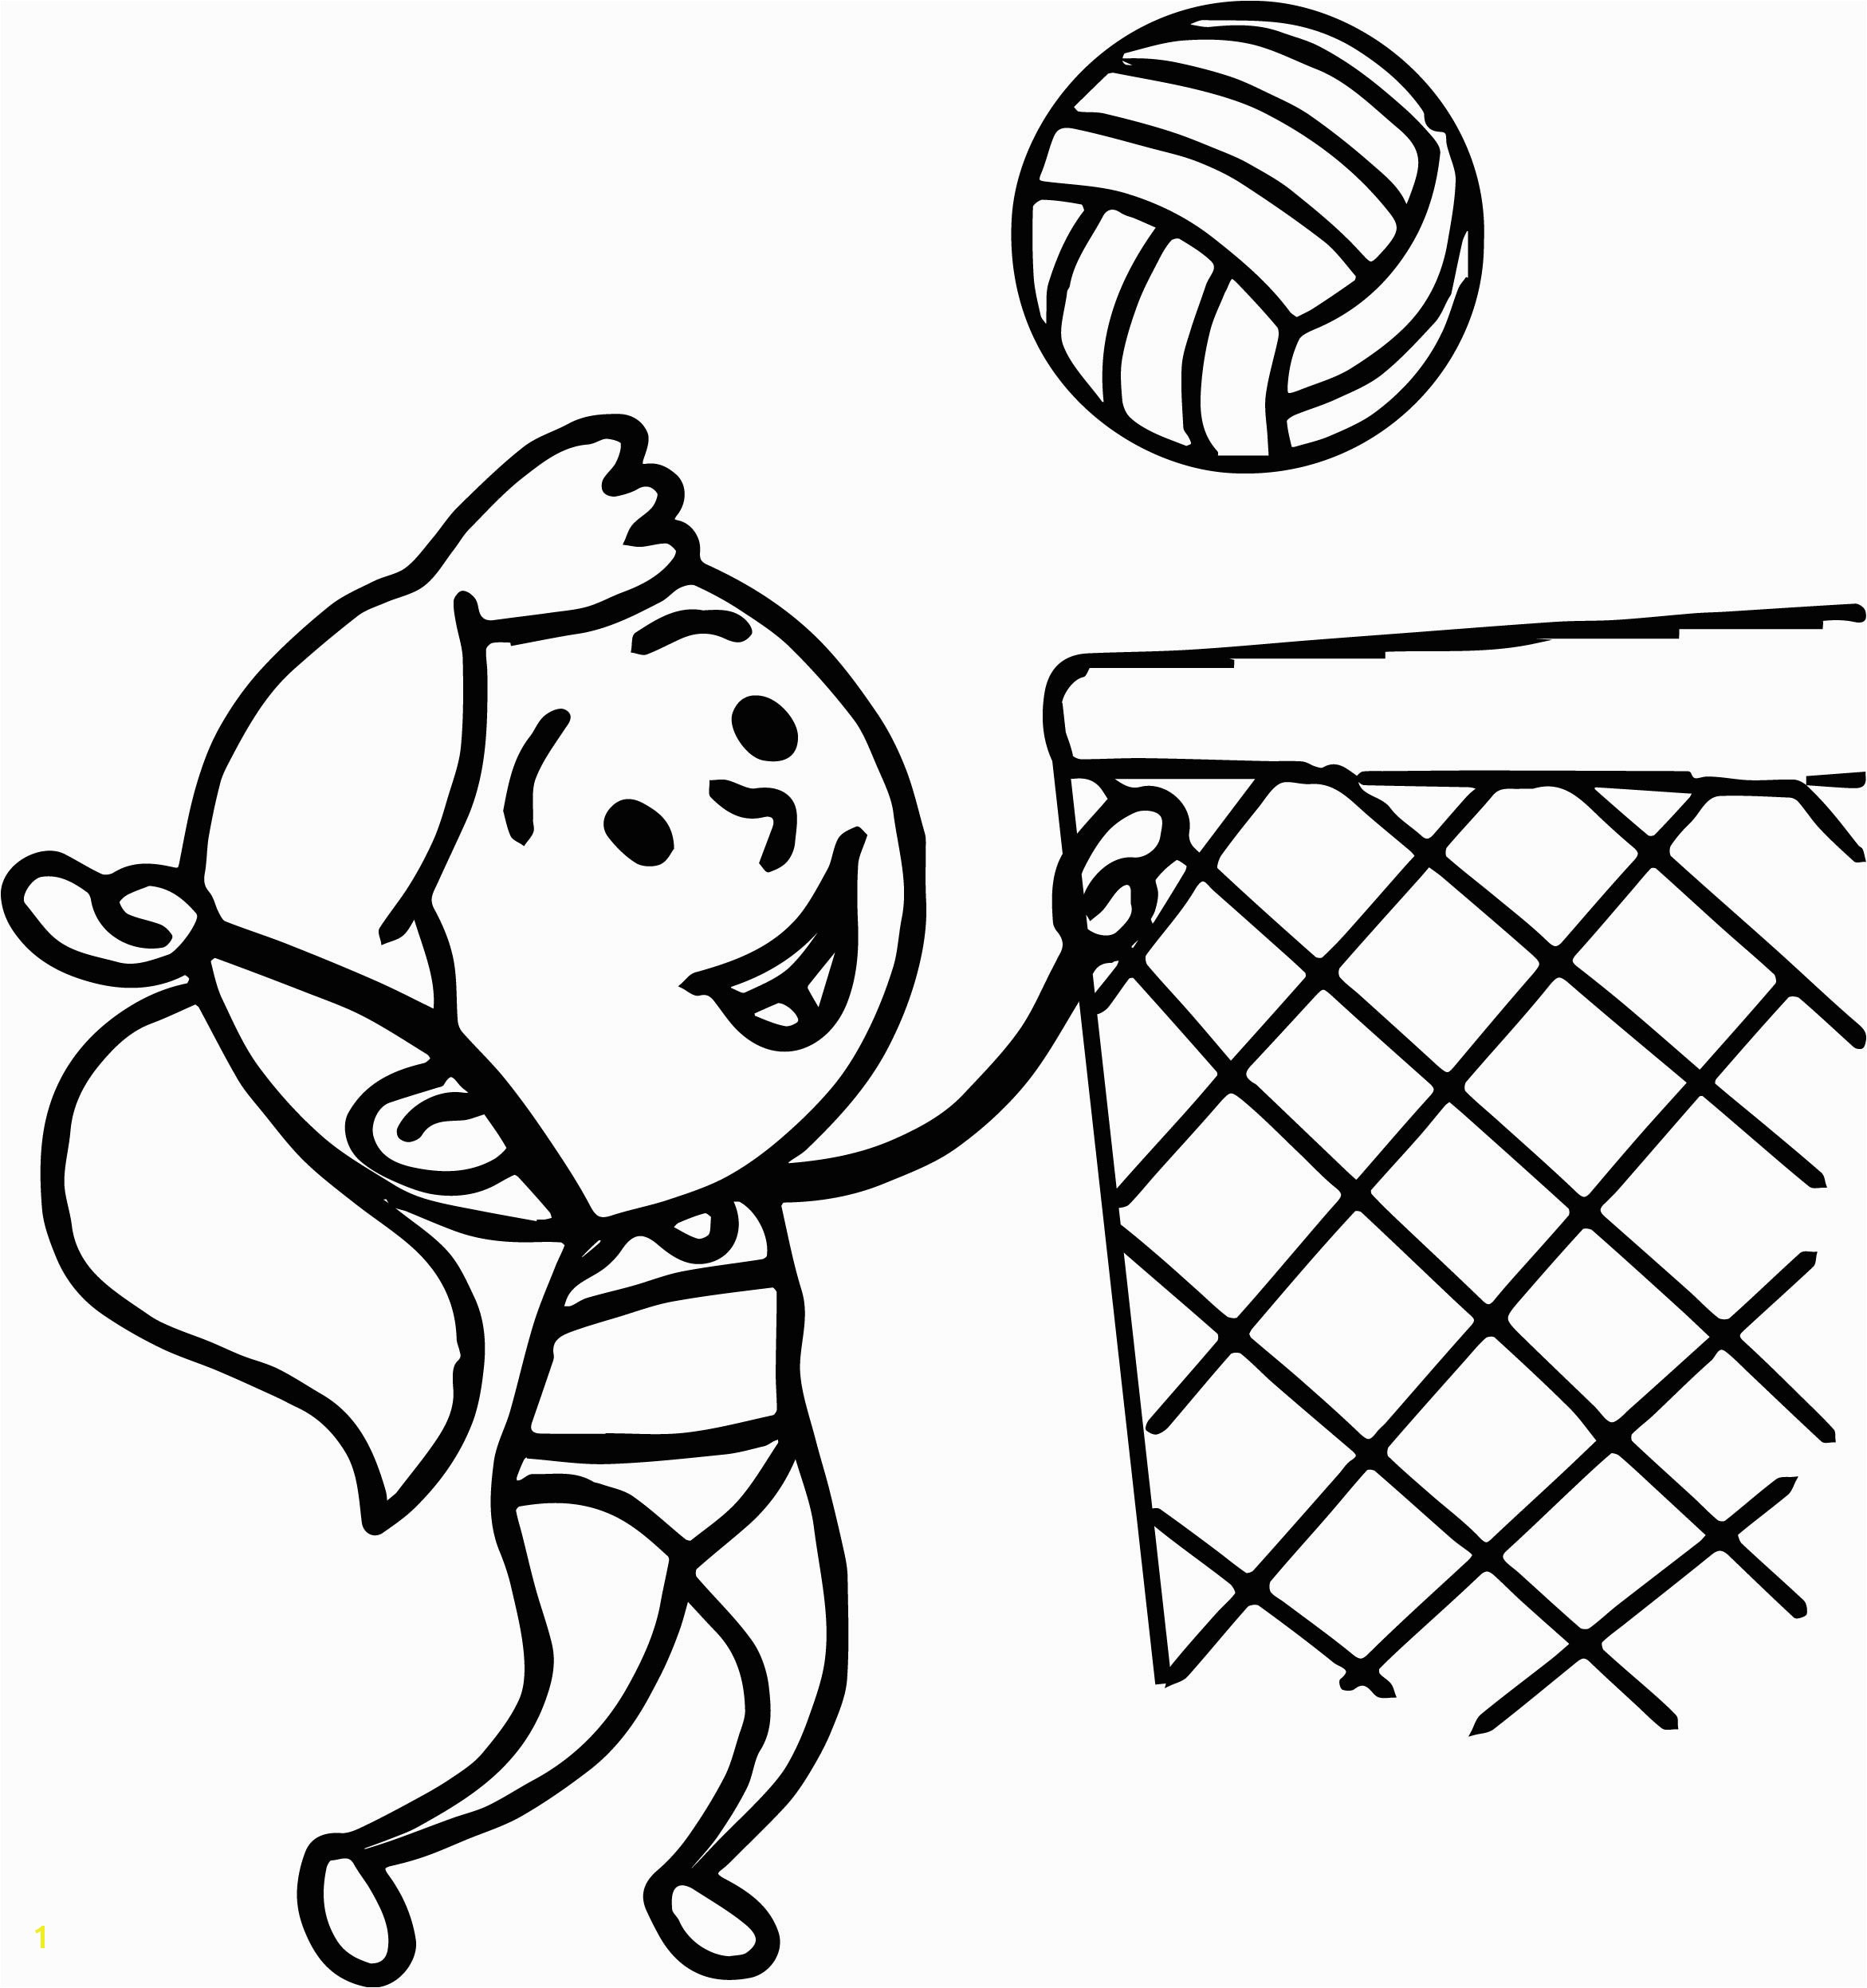 free coloring pages for girls minion swimsuit images cartoon girl in bathing suit playing beach volleyball coloring page